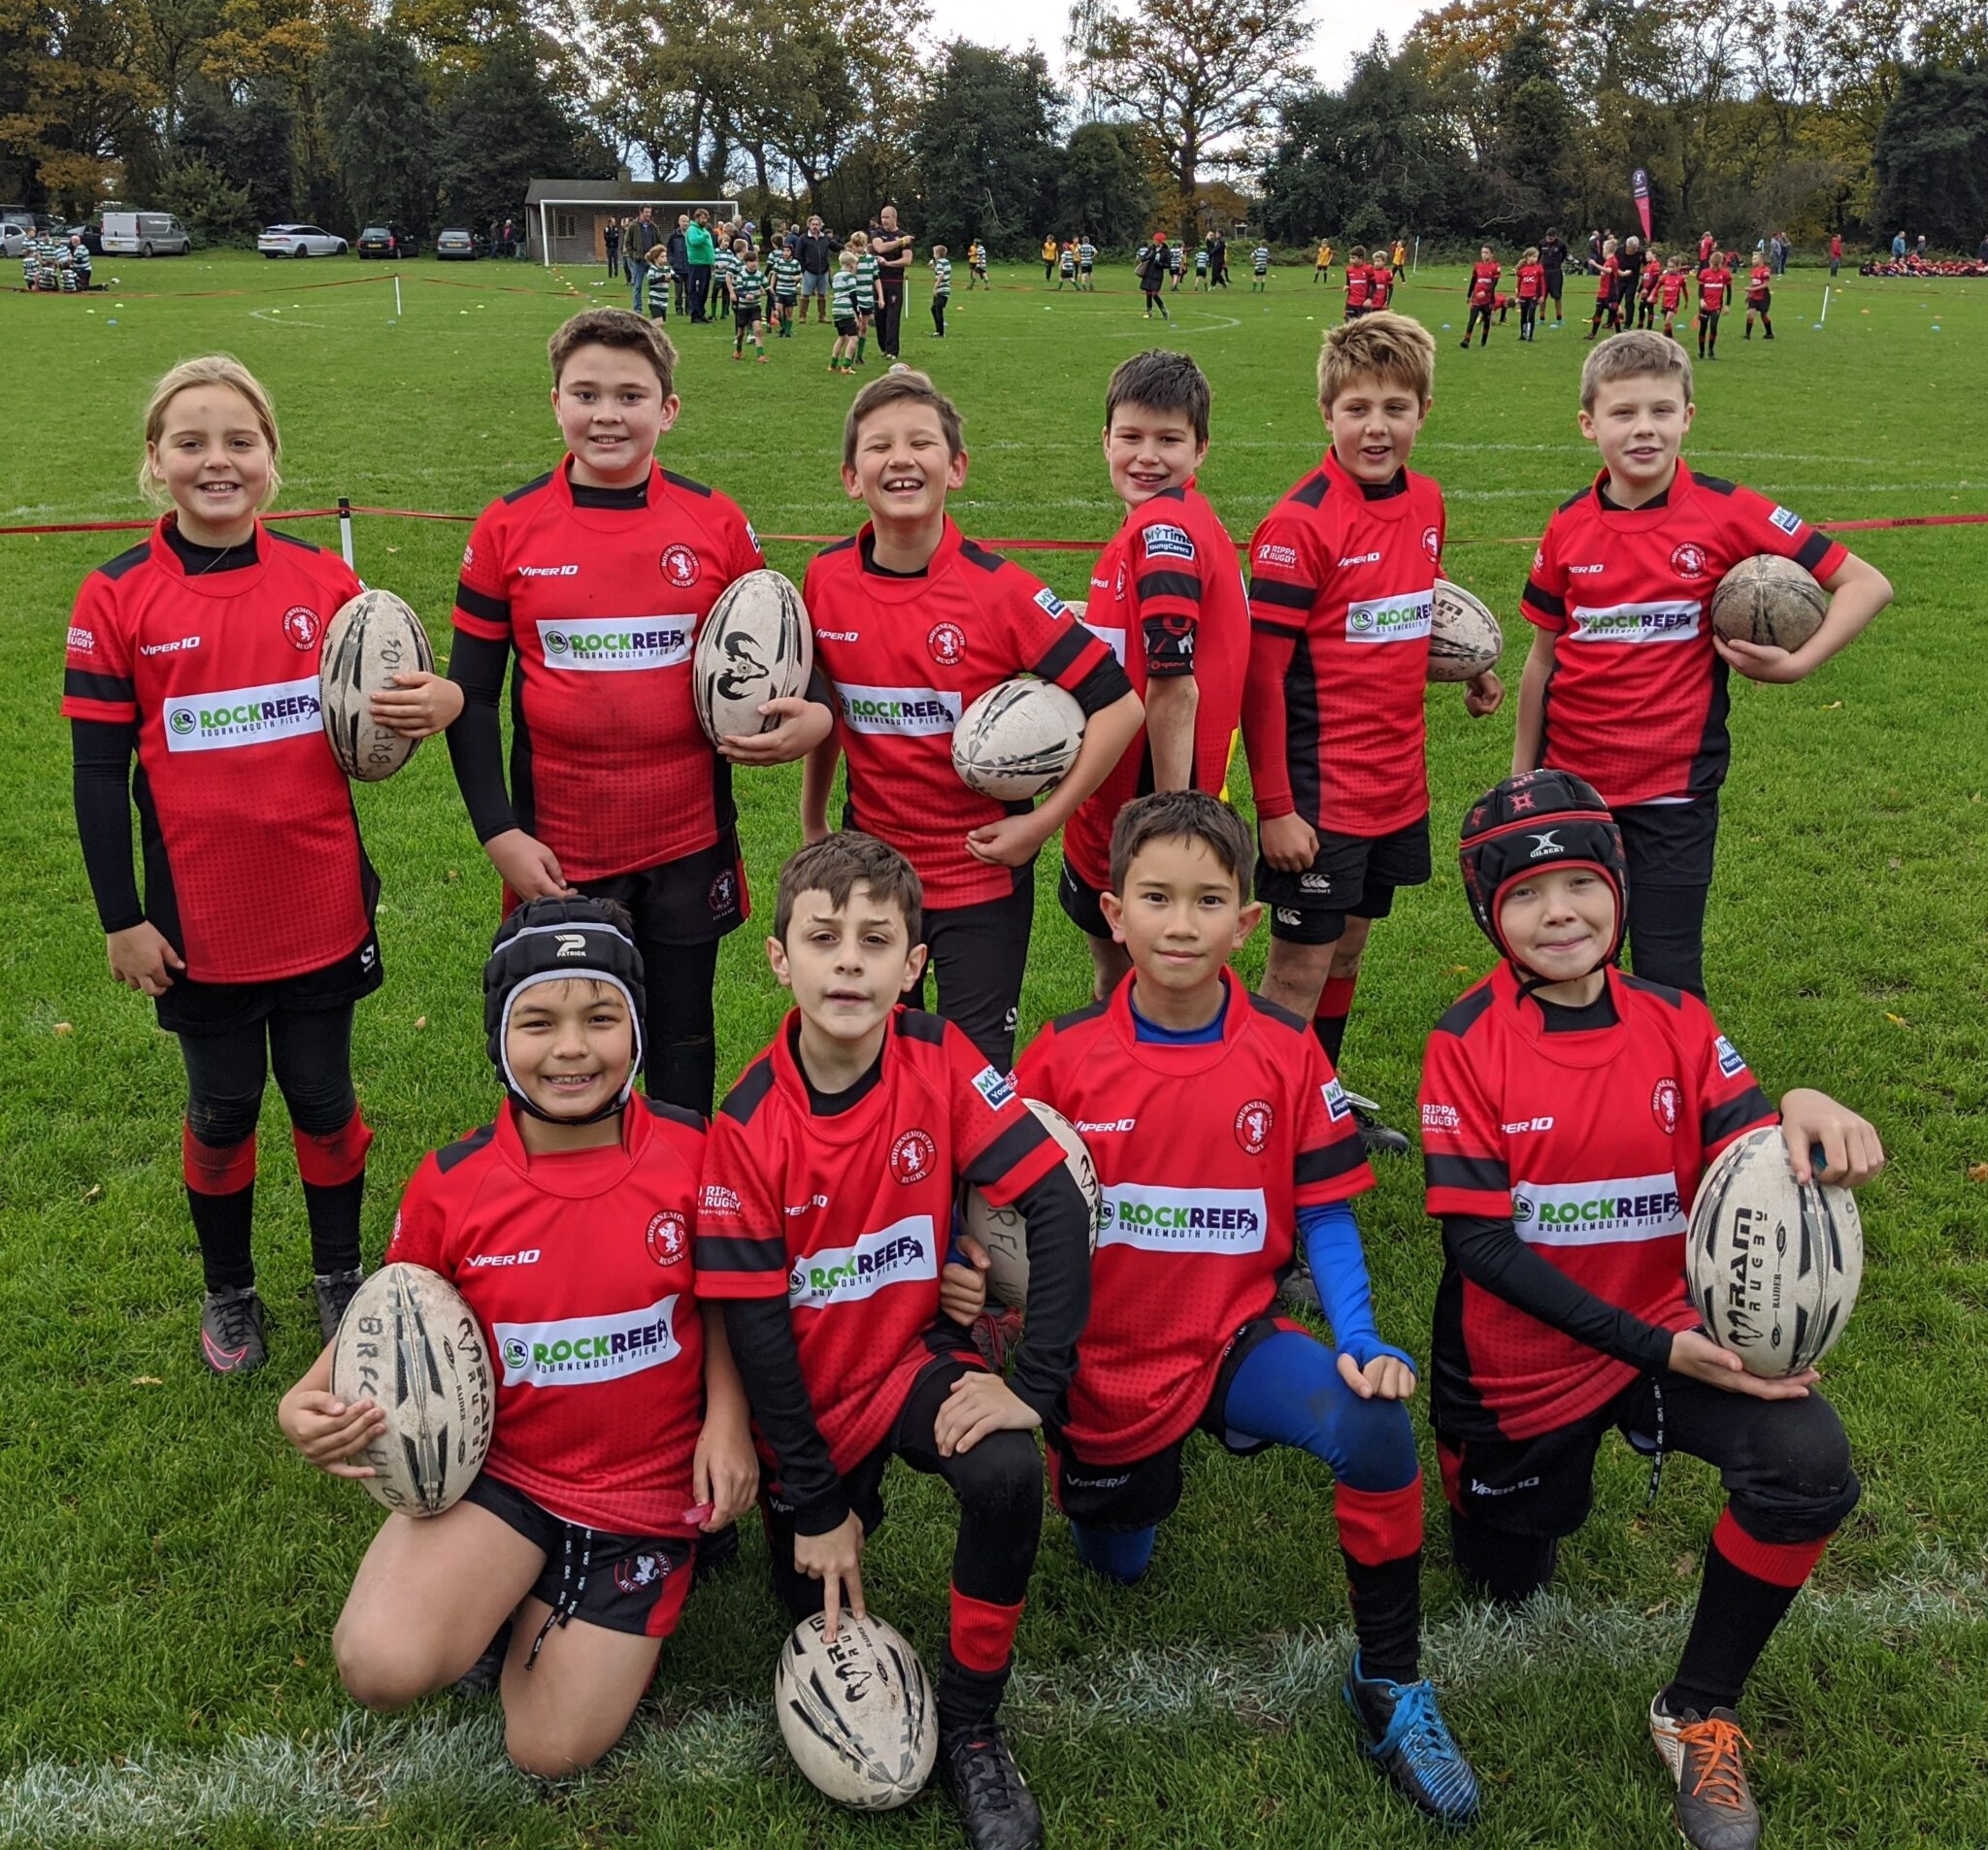 Bournemouth Rugby Club Under 11s Team